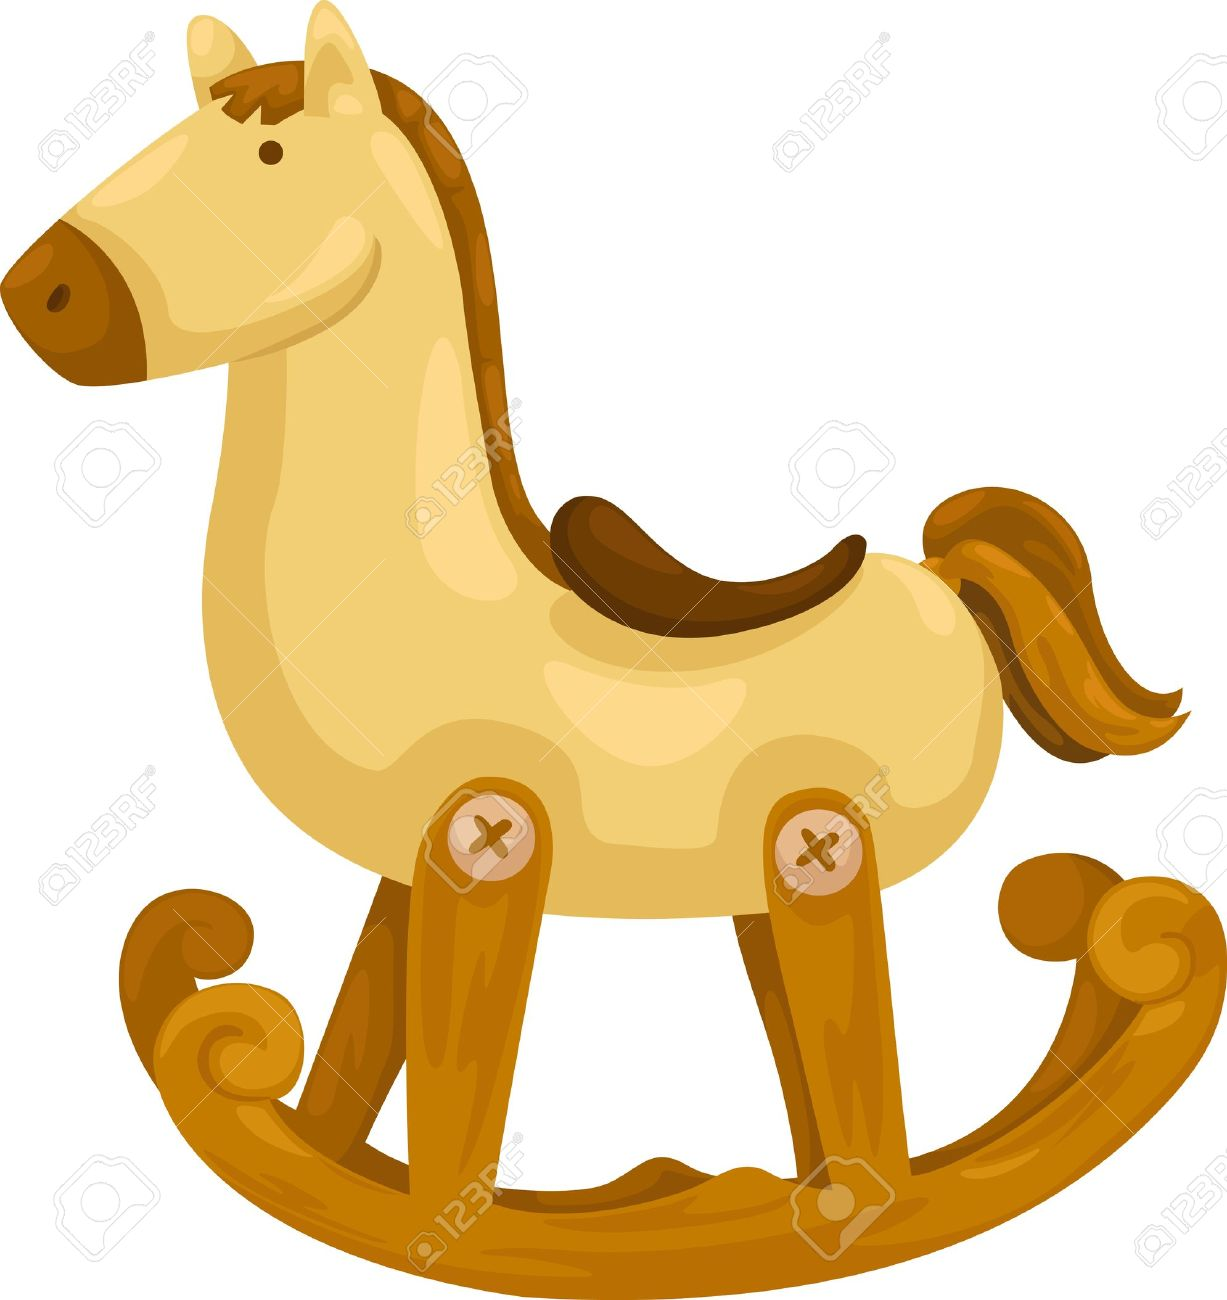 Rocking Horse Vector Illustration On A White Background Royalty.